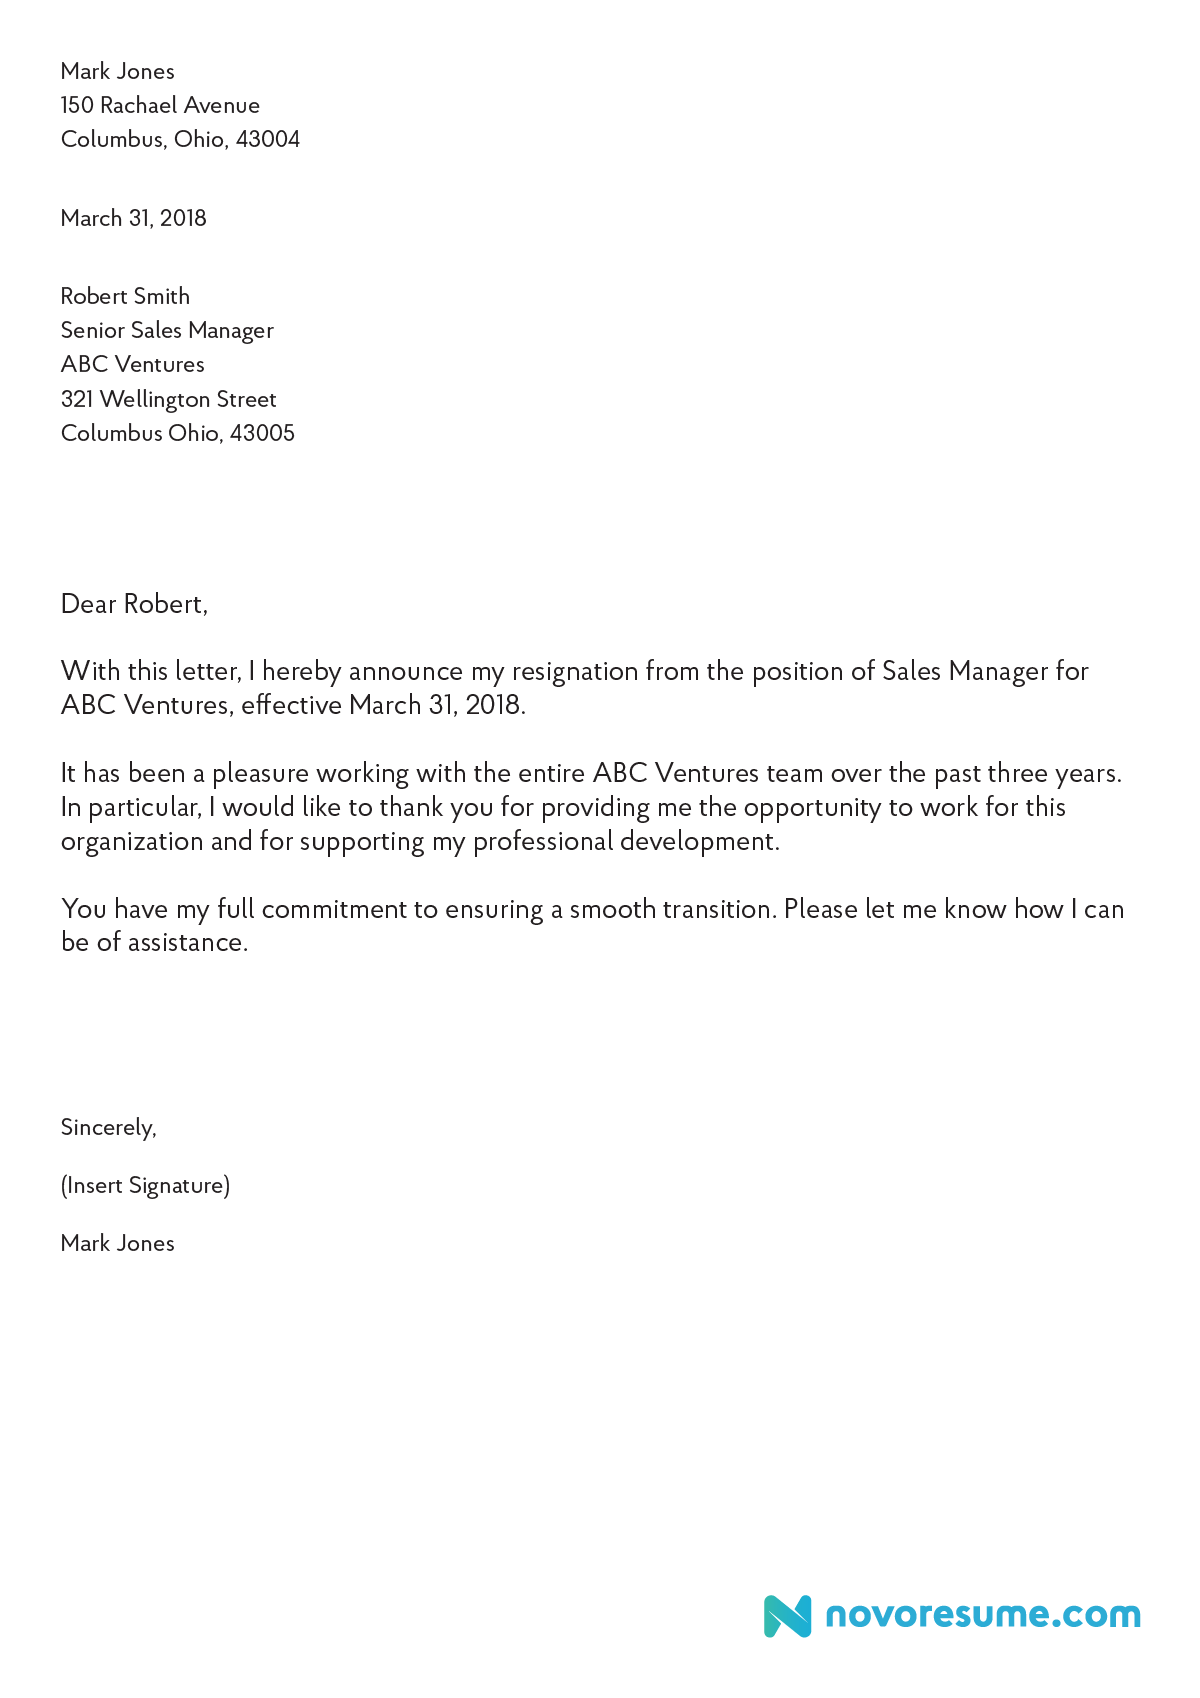 Letter Of Resignation Sample